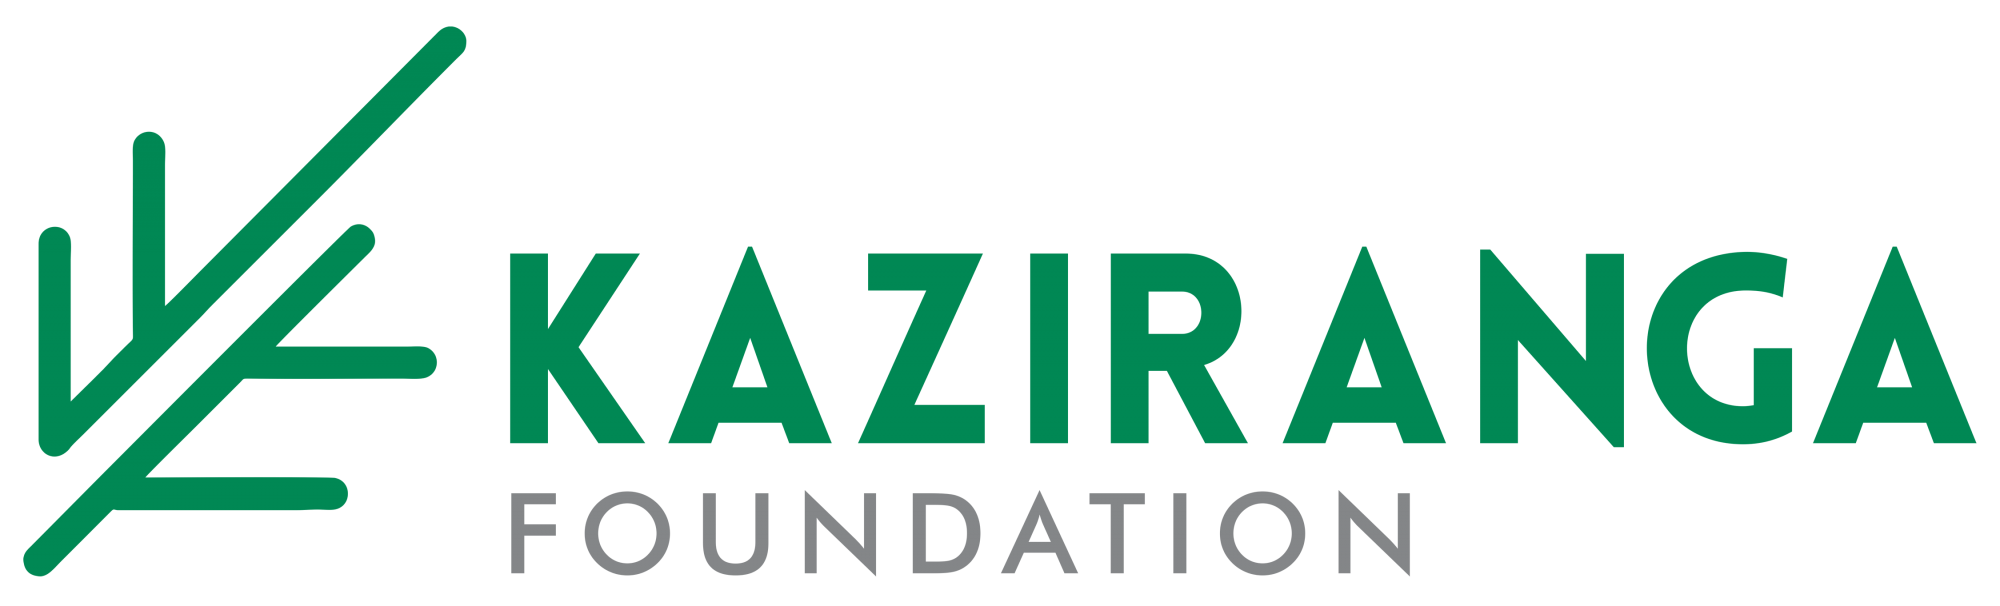 Kaziranga Foundation